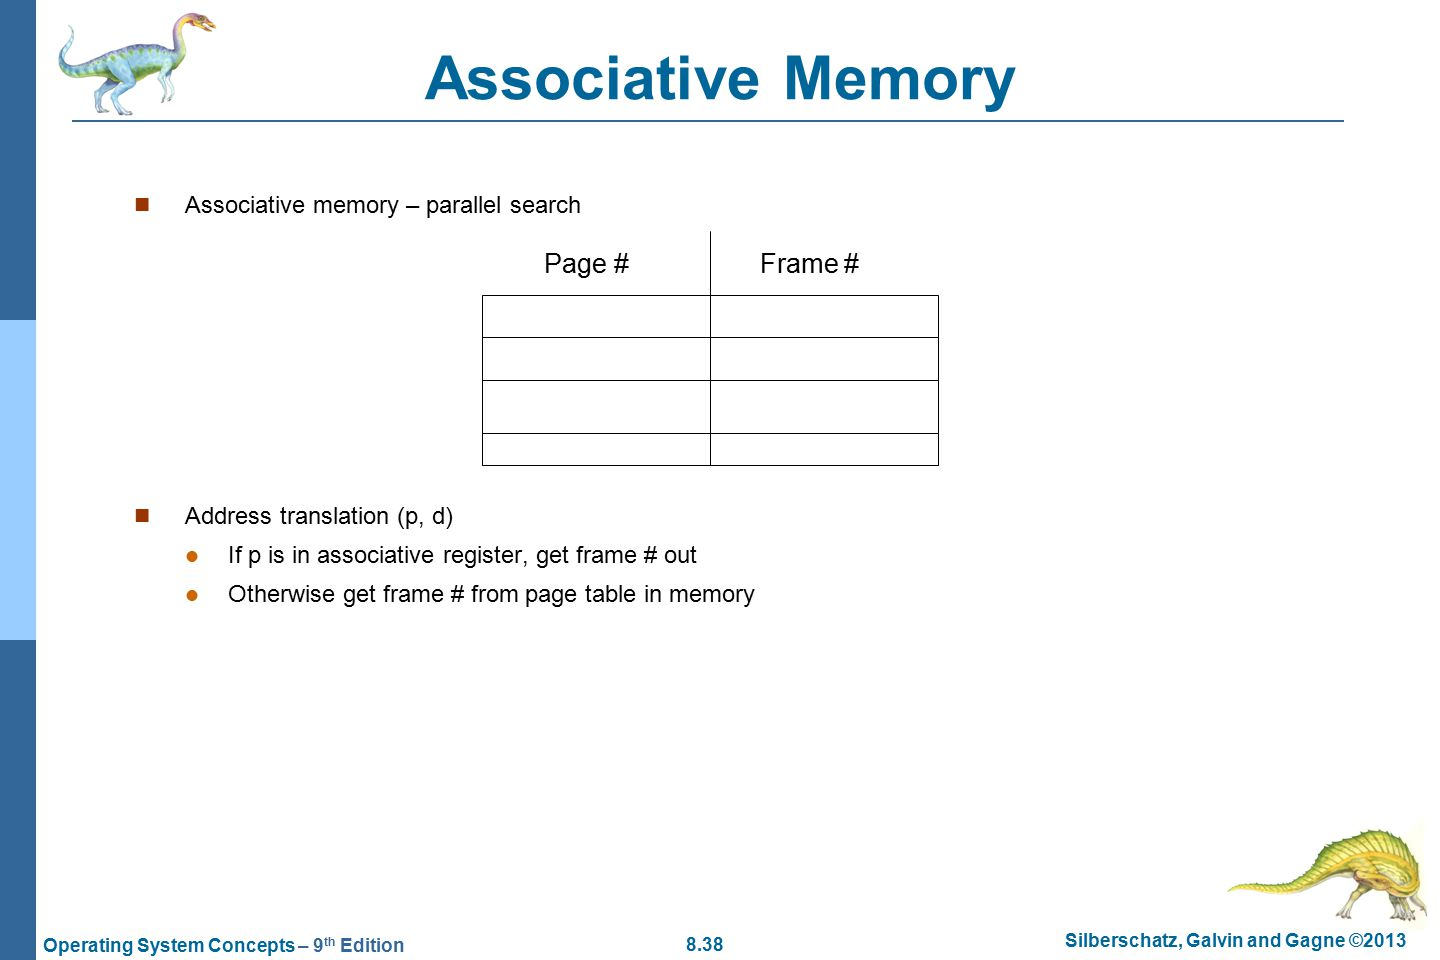 8.38 Silberschatz, Galvin and Gagne ©2013 Operating System Concepts – 9 th Edition Associative Memory Associative memory – parallel search Address translation (p, d) If p is in associative register, get frame # out Otherwise get frame # from page table in memory Page #Frame #